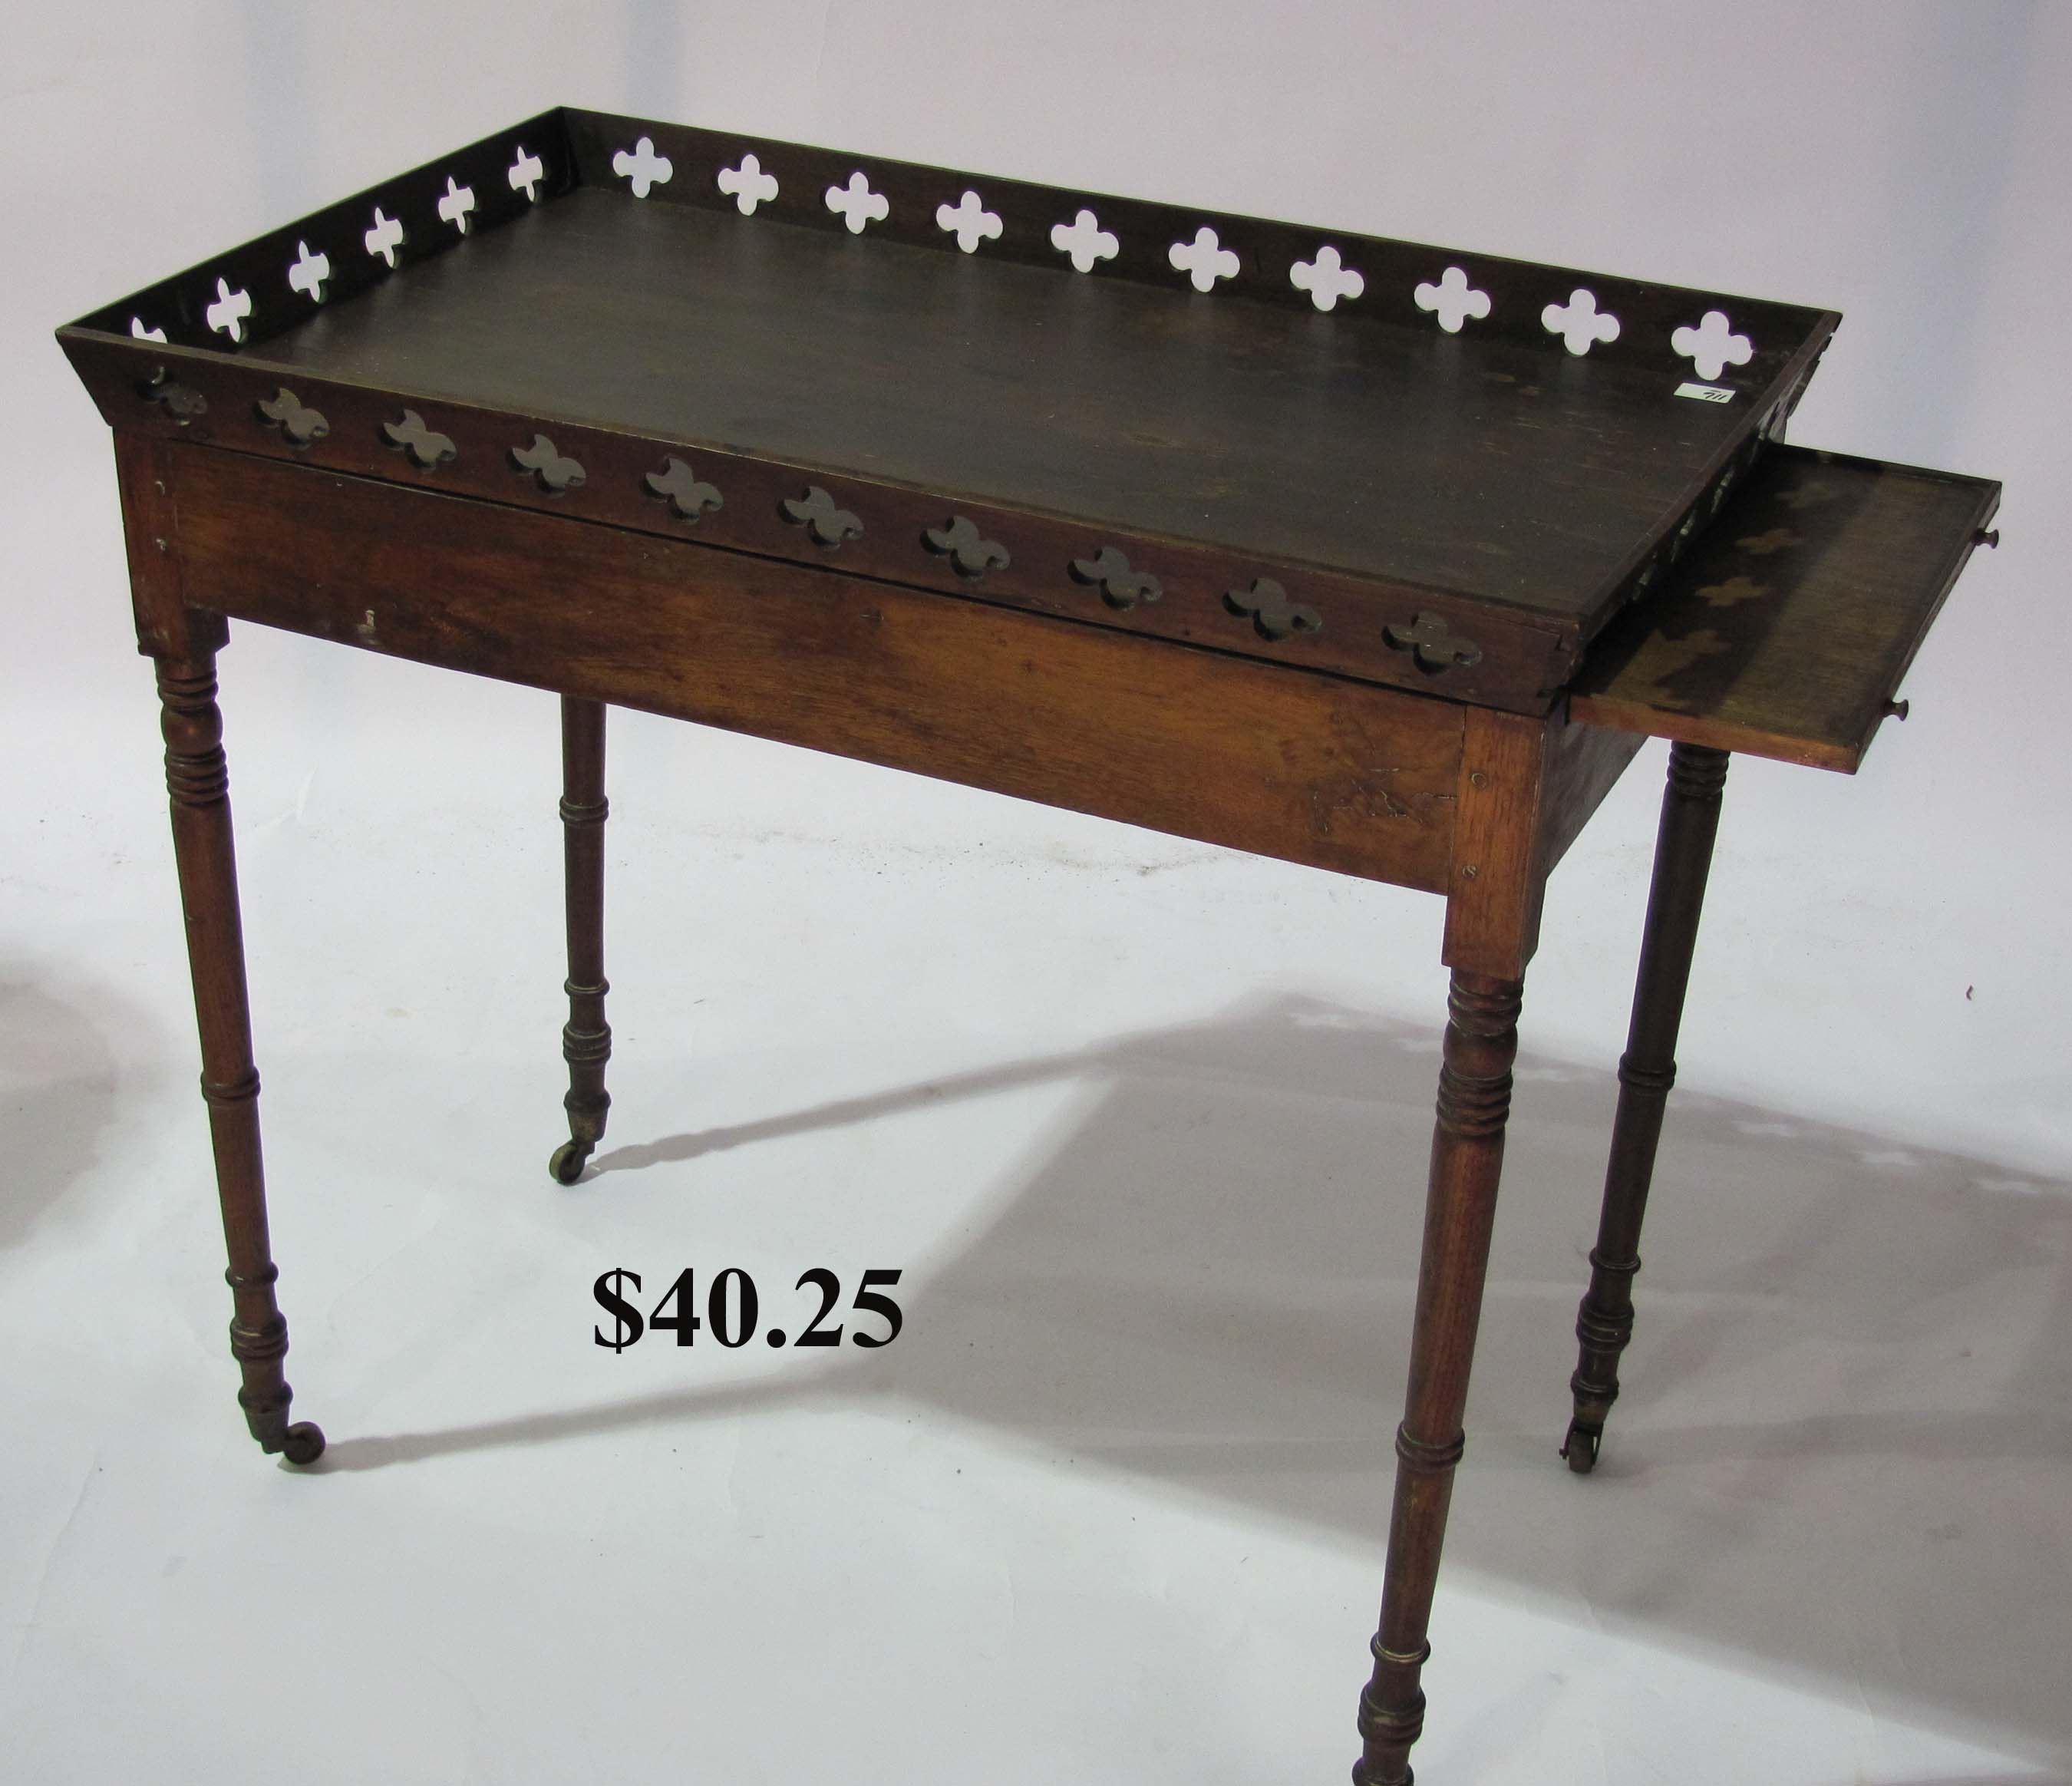 Hap Moore Antiques Auctions : Lot116Teatable from www.hapmoore.com size 2700 x 2327 jpeg 280kB